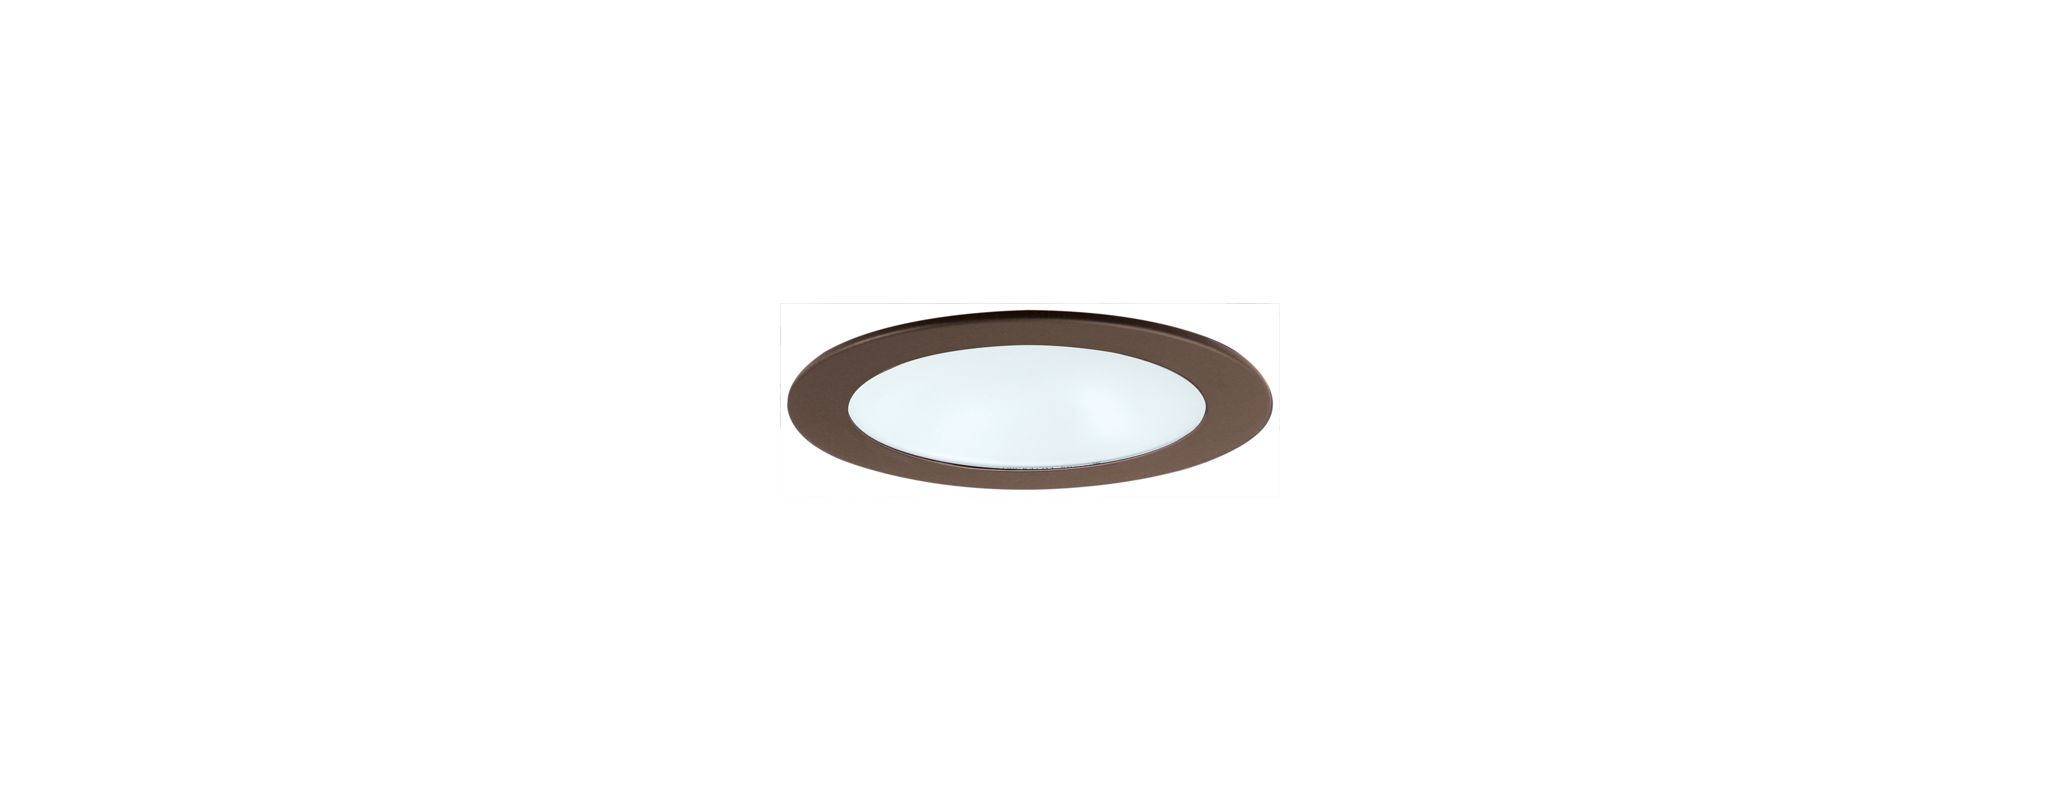 "Elco EL512 5"" Shower Trim with Albalite Lens Bronze Recessed Lights"